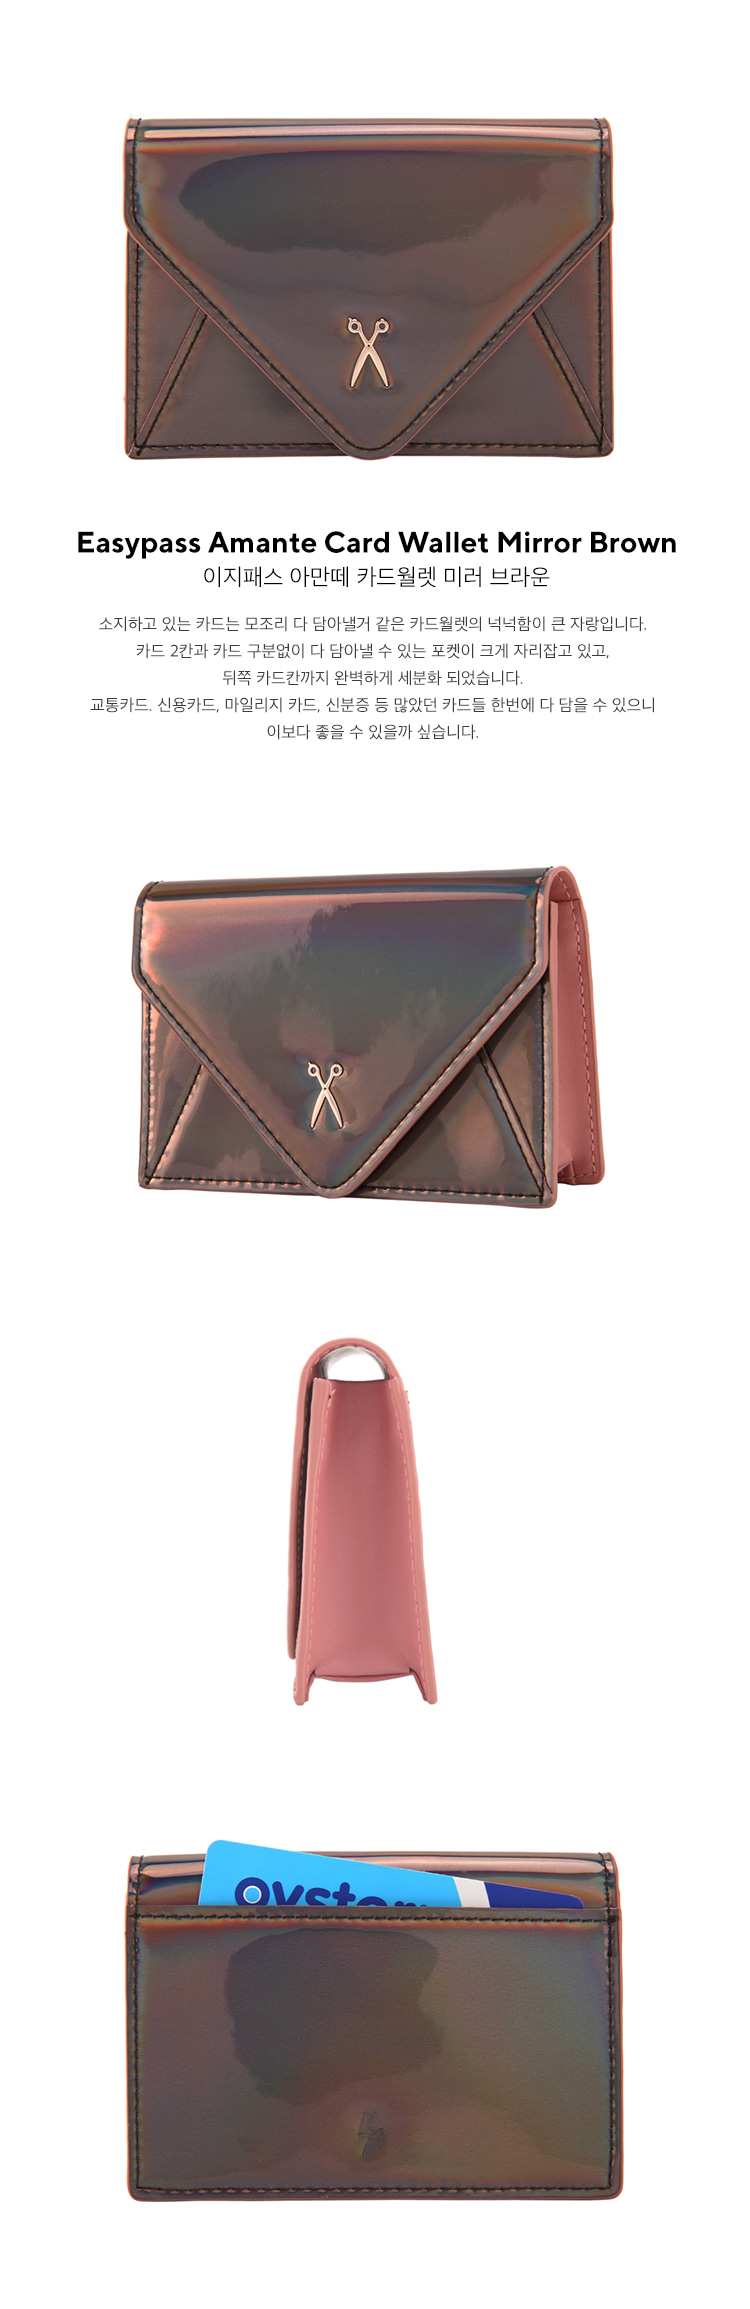 조셉앤스테이시(JOSEPH&STACEY) Easypass Amante Card Wallet Mirror Brown